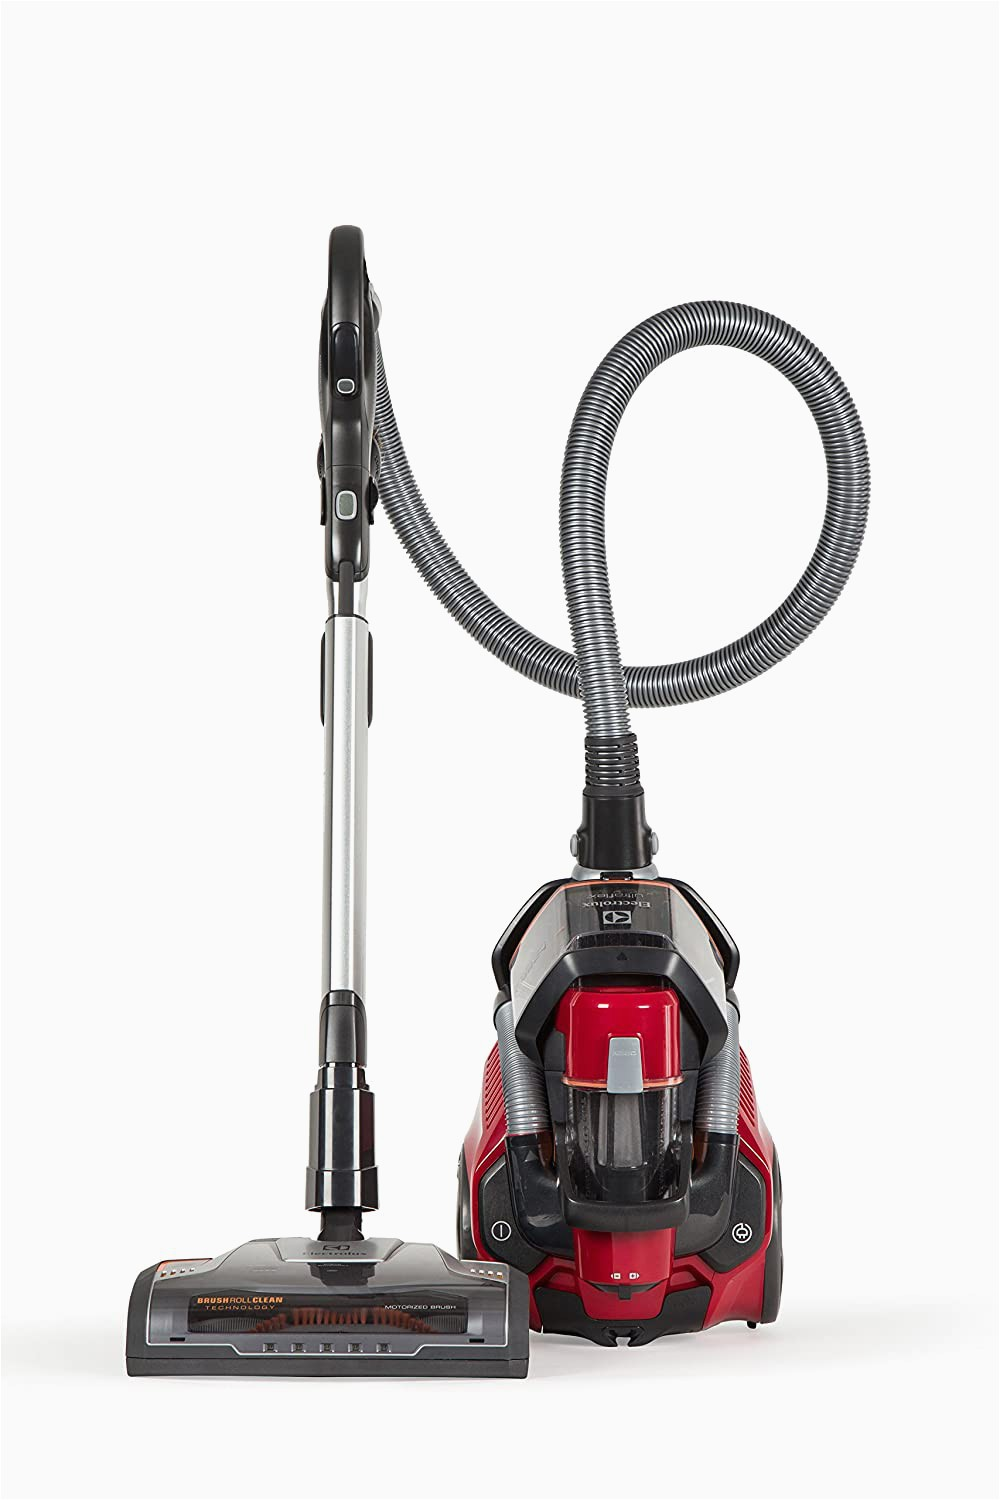 Best Vacuum Cleaner for Wood Floors and area Rugs 10 Best Vacuum for Wool Carpet top Guide [updated]